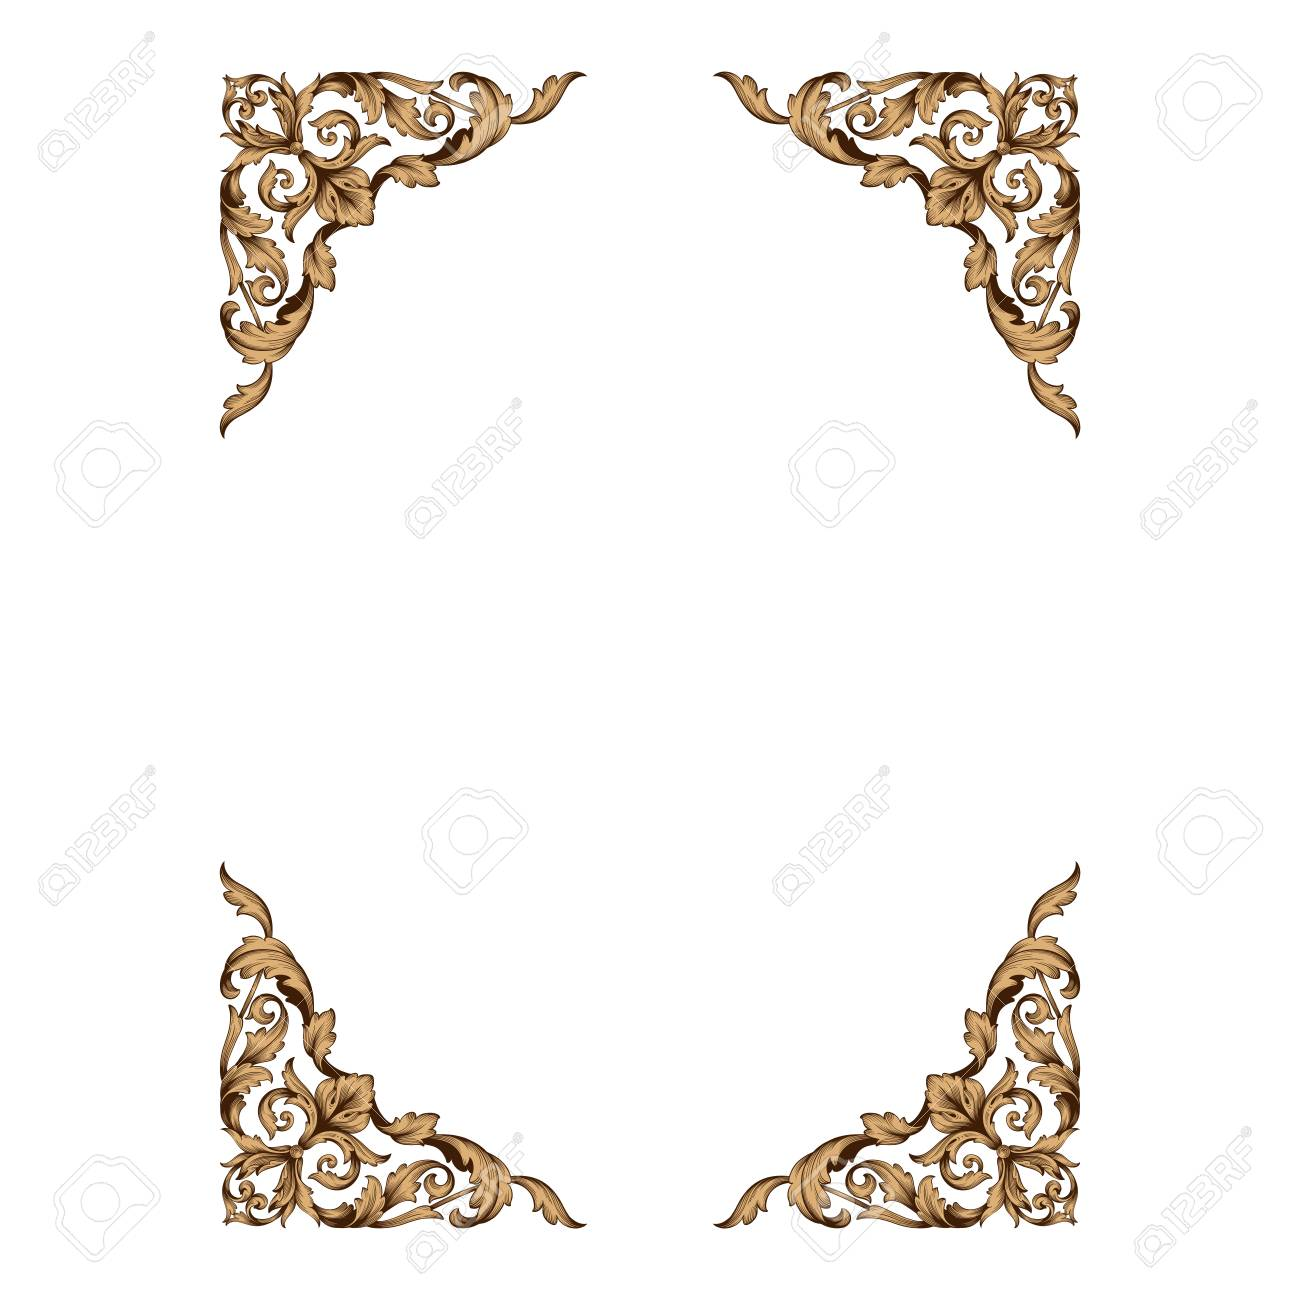 Decorative Line Gold Clipart baroque